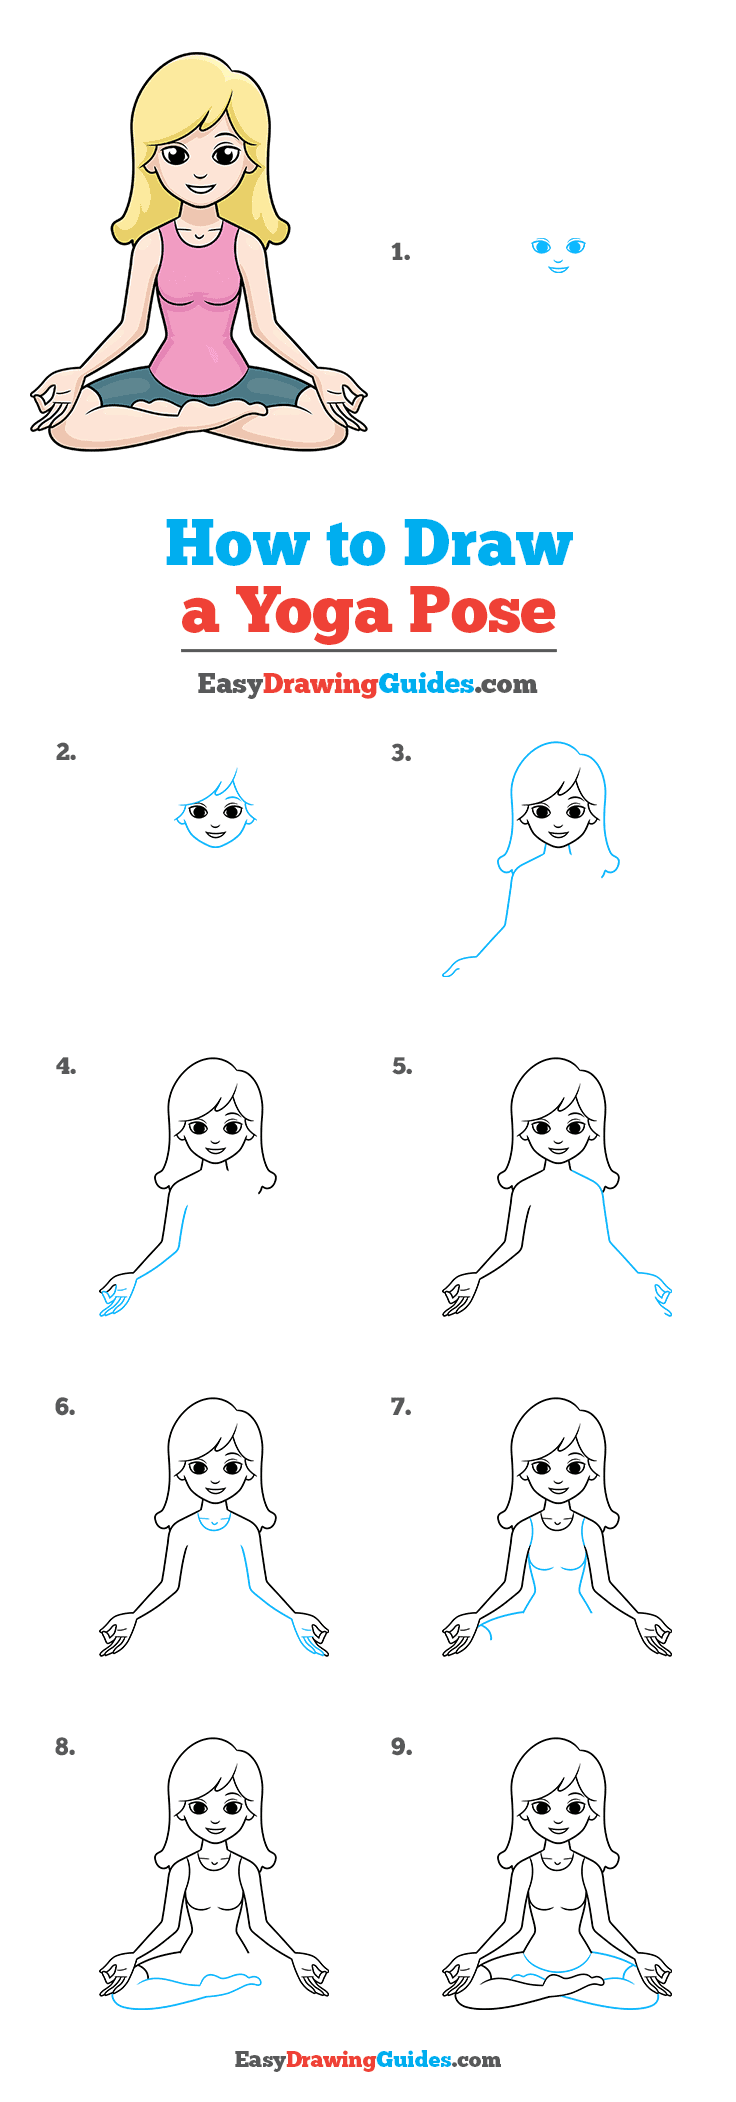 How to Draw a Yoga Pose Step by Step Tutorial Image